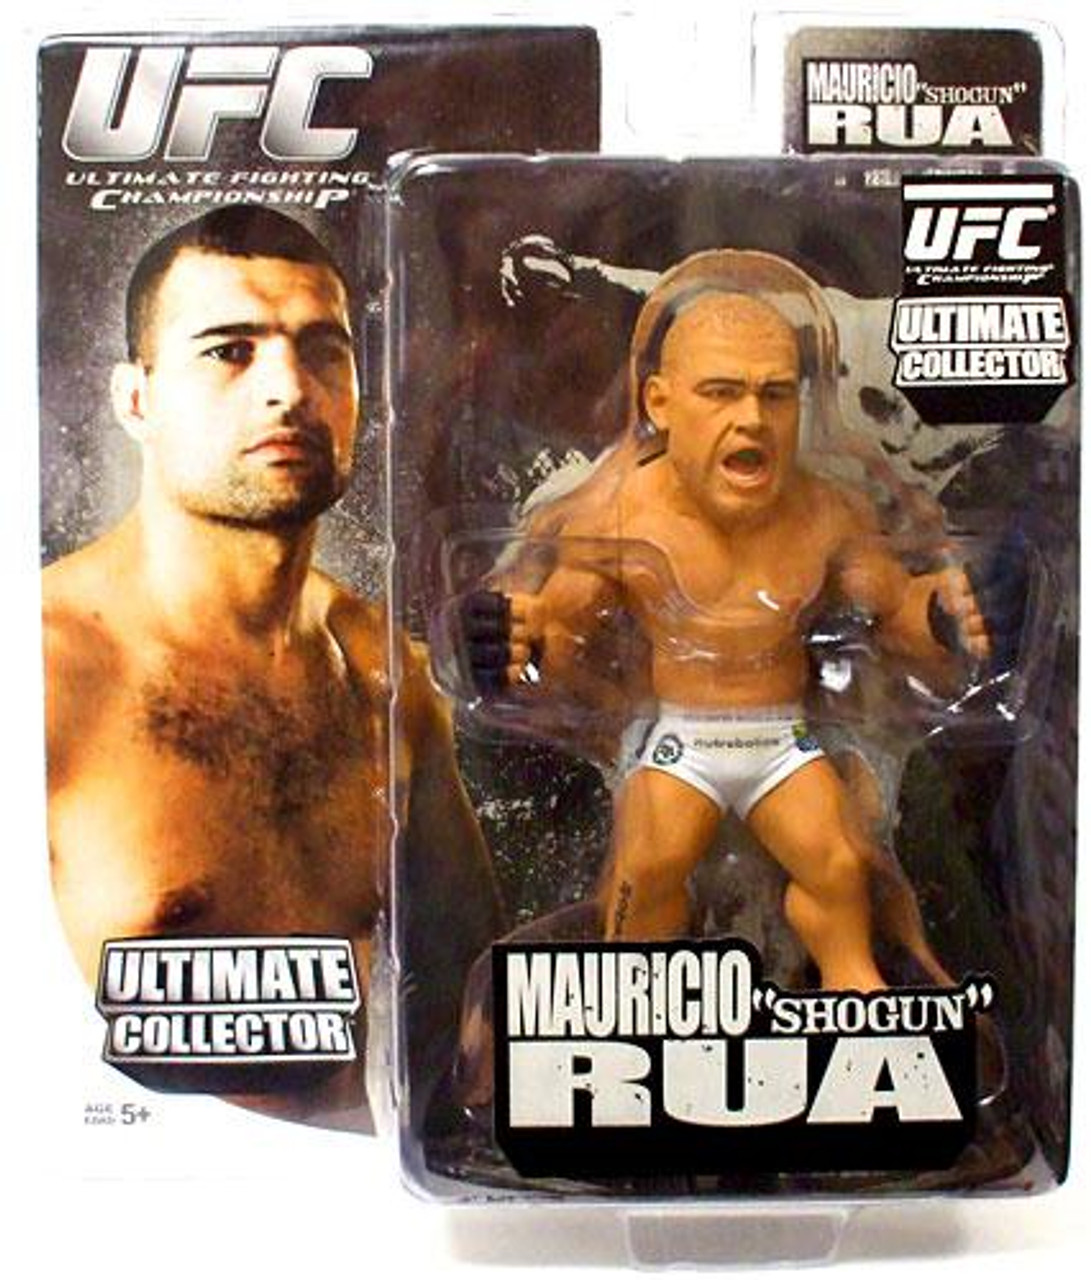 UFC Ultimate Collector Series 4 Mauricio Rua Action Figure